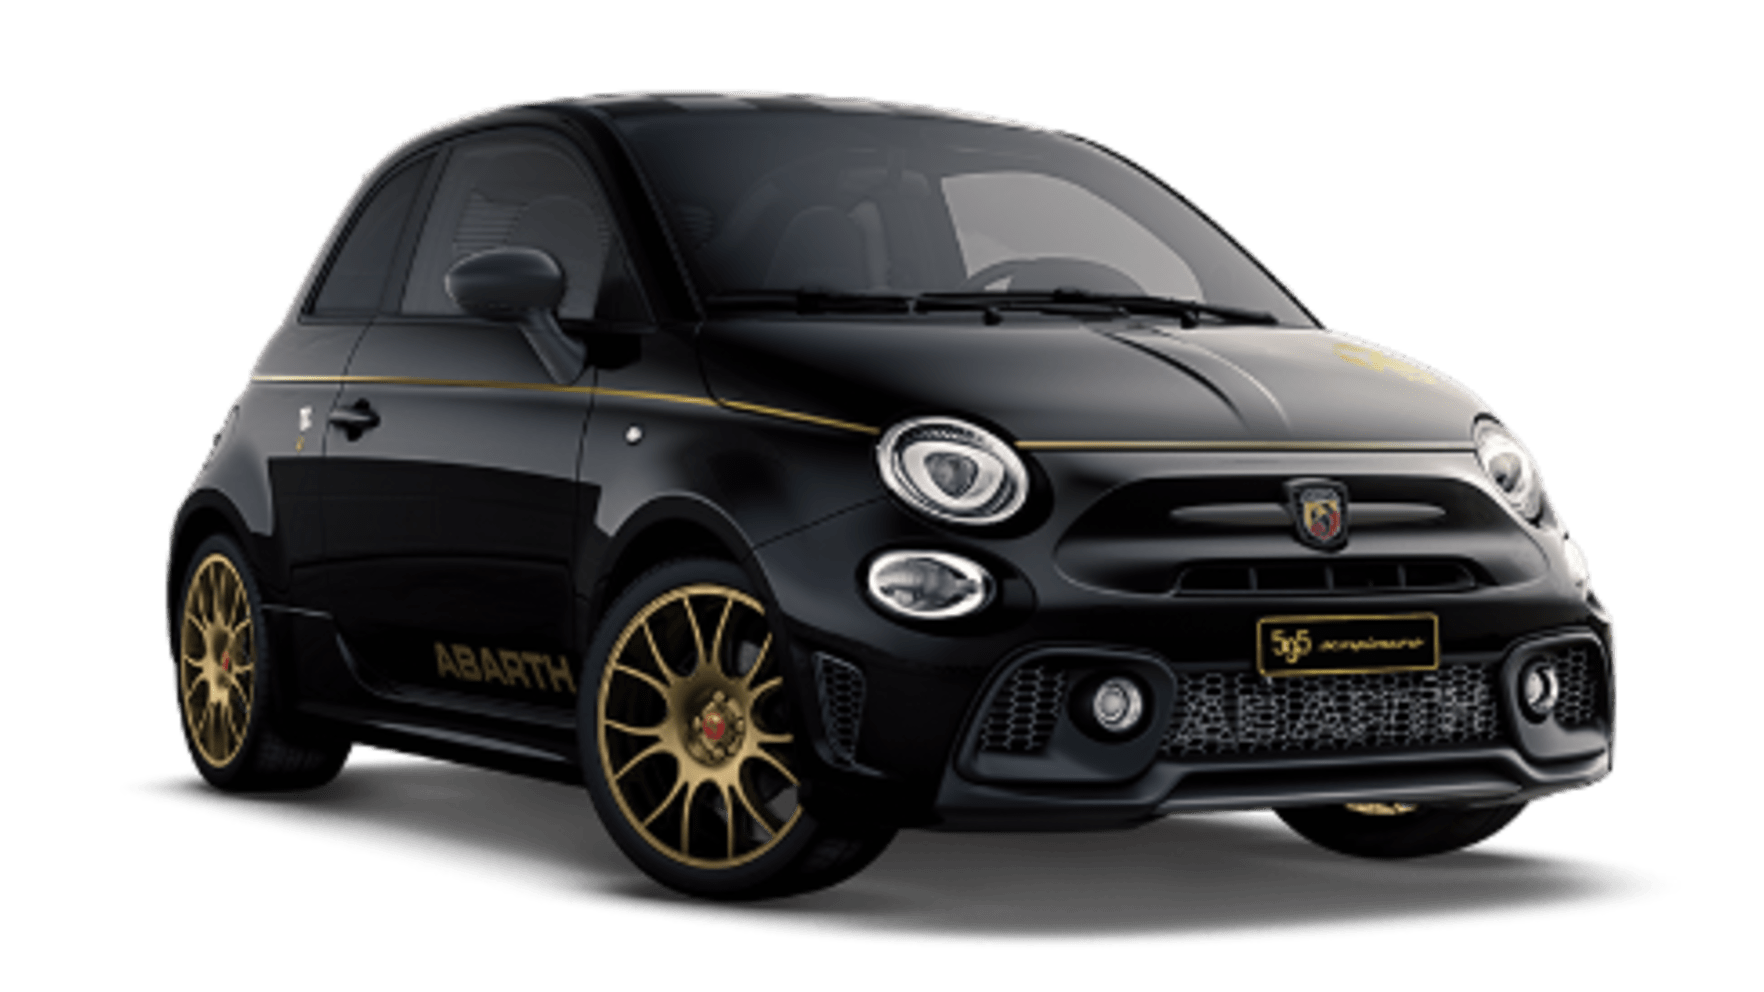 ABARTH 595 SCORPIONEORO LIMITED EDITION